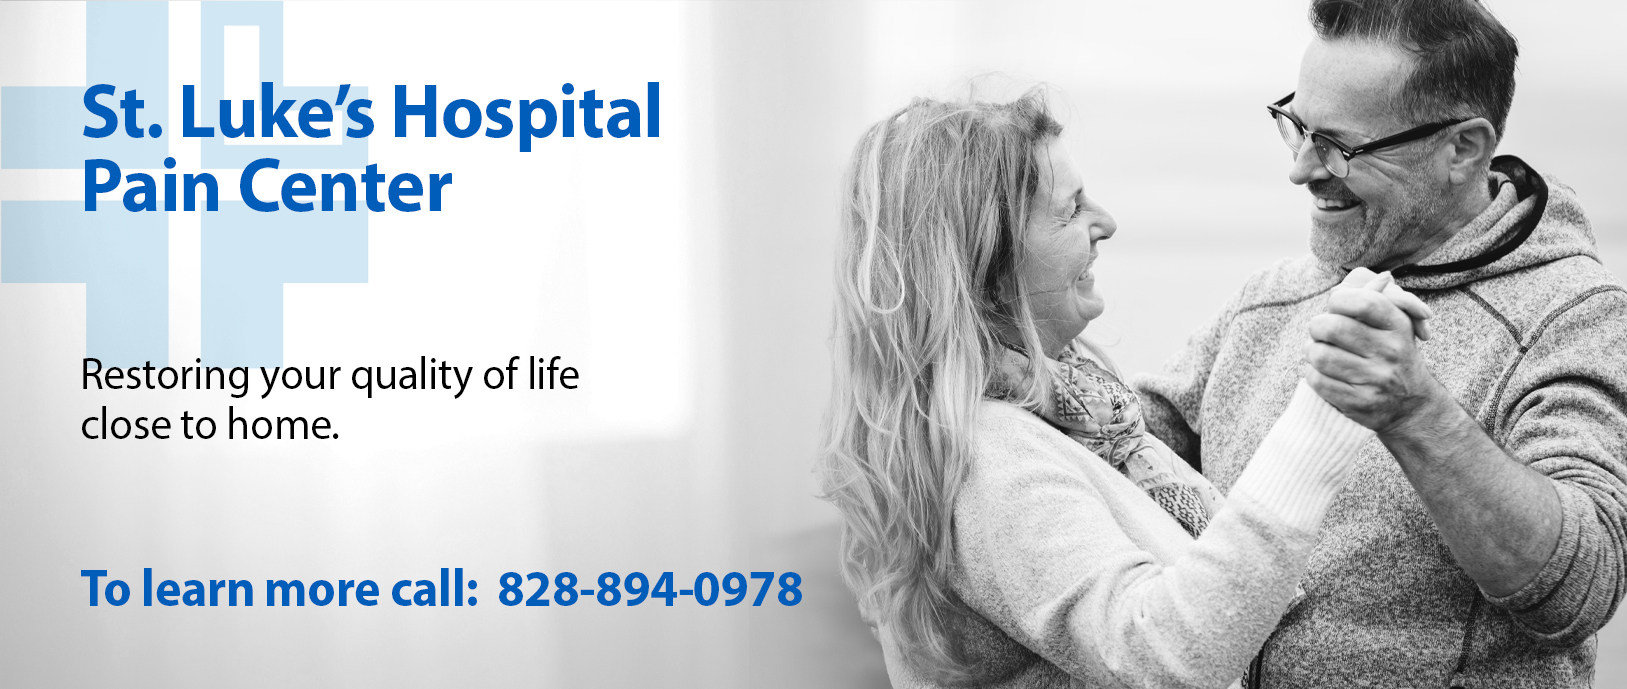 St. Luke's Hospital Pain Center helps you restore your quality of life without traveling long distance. If you have any questions call 828-894-0978